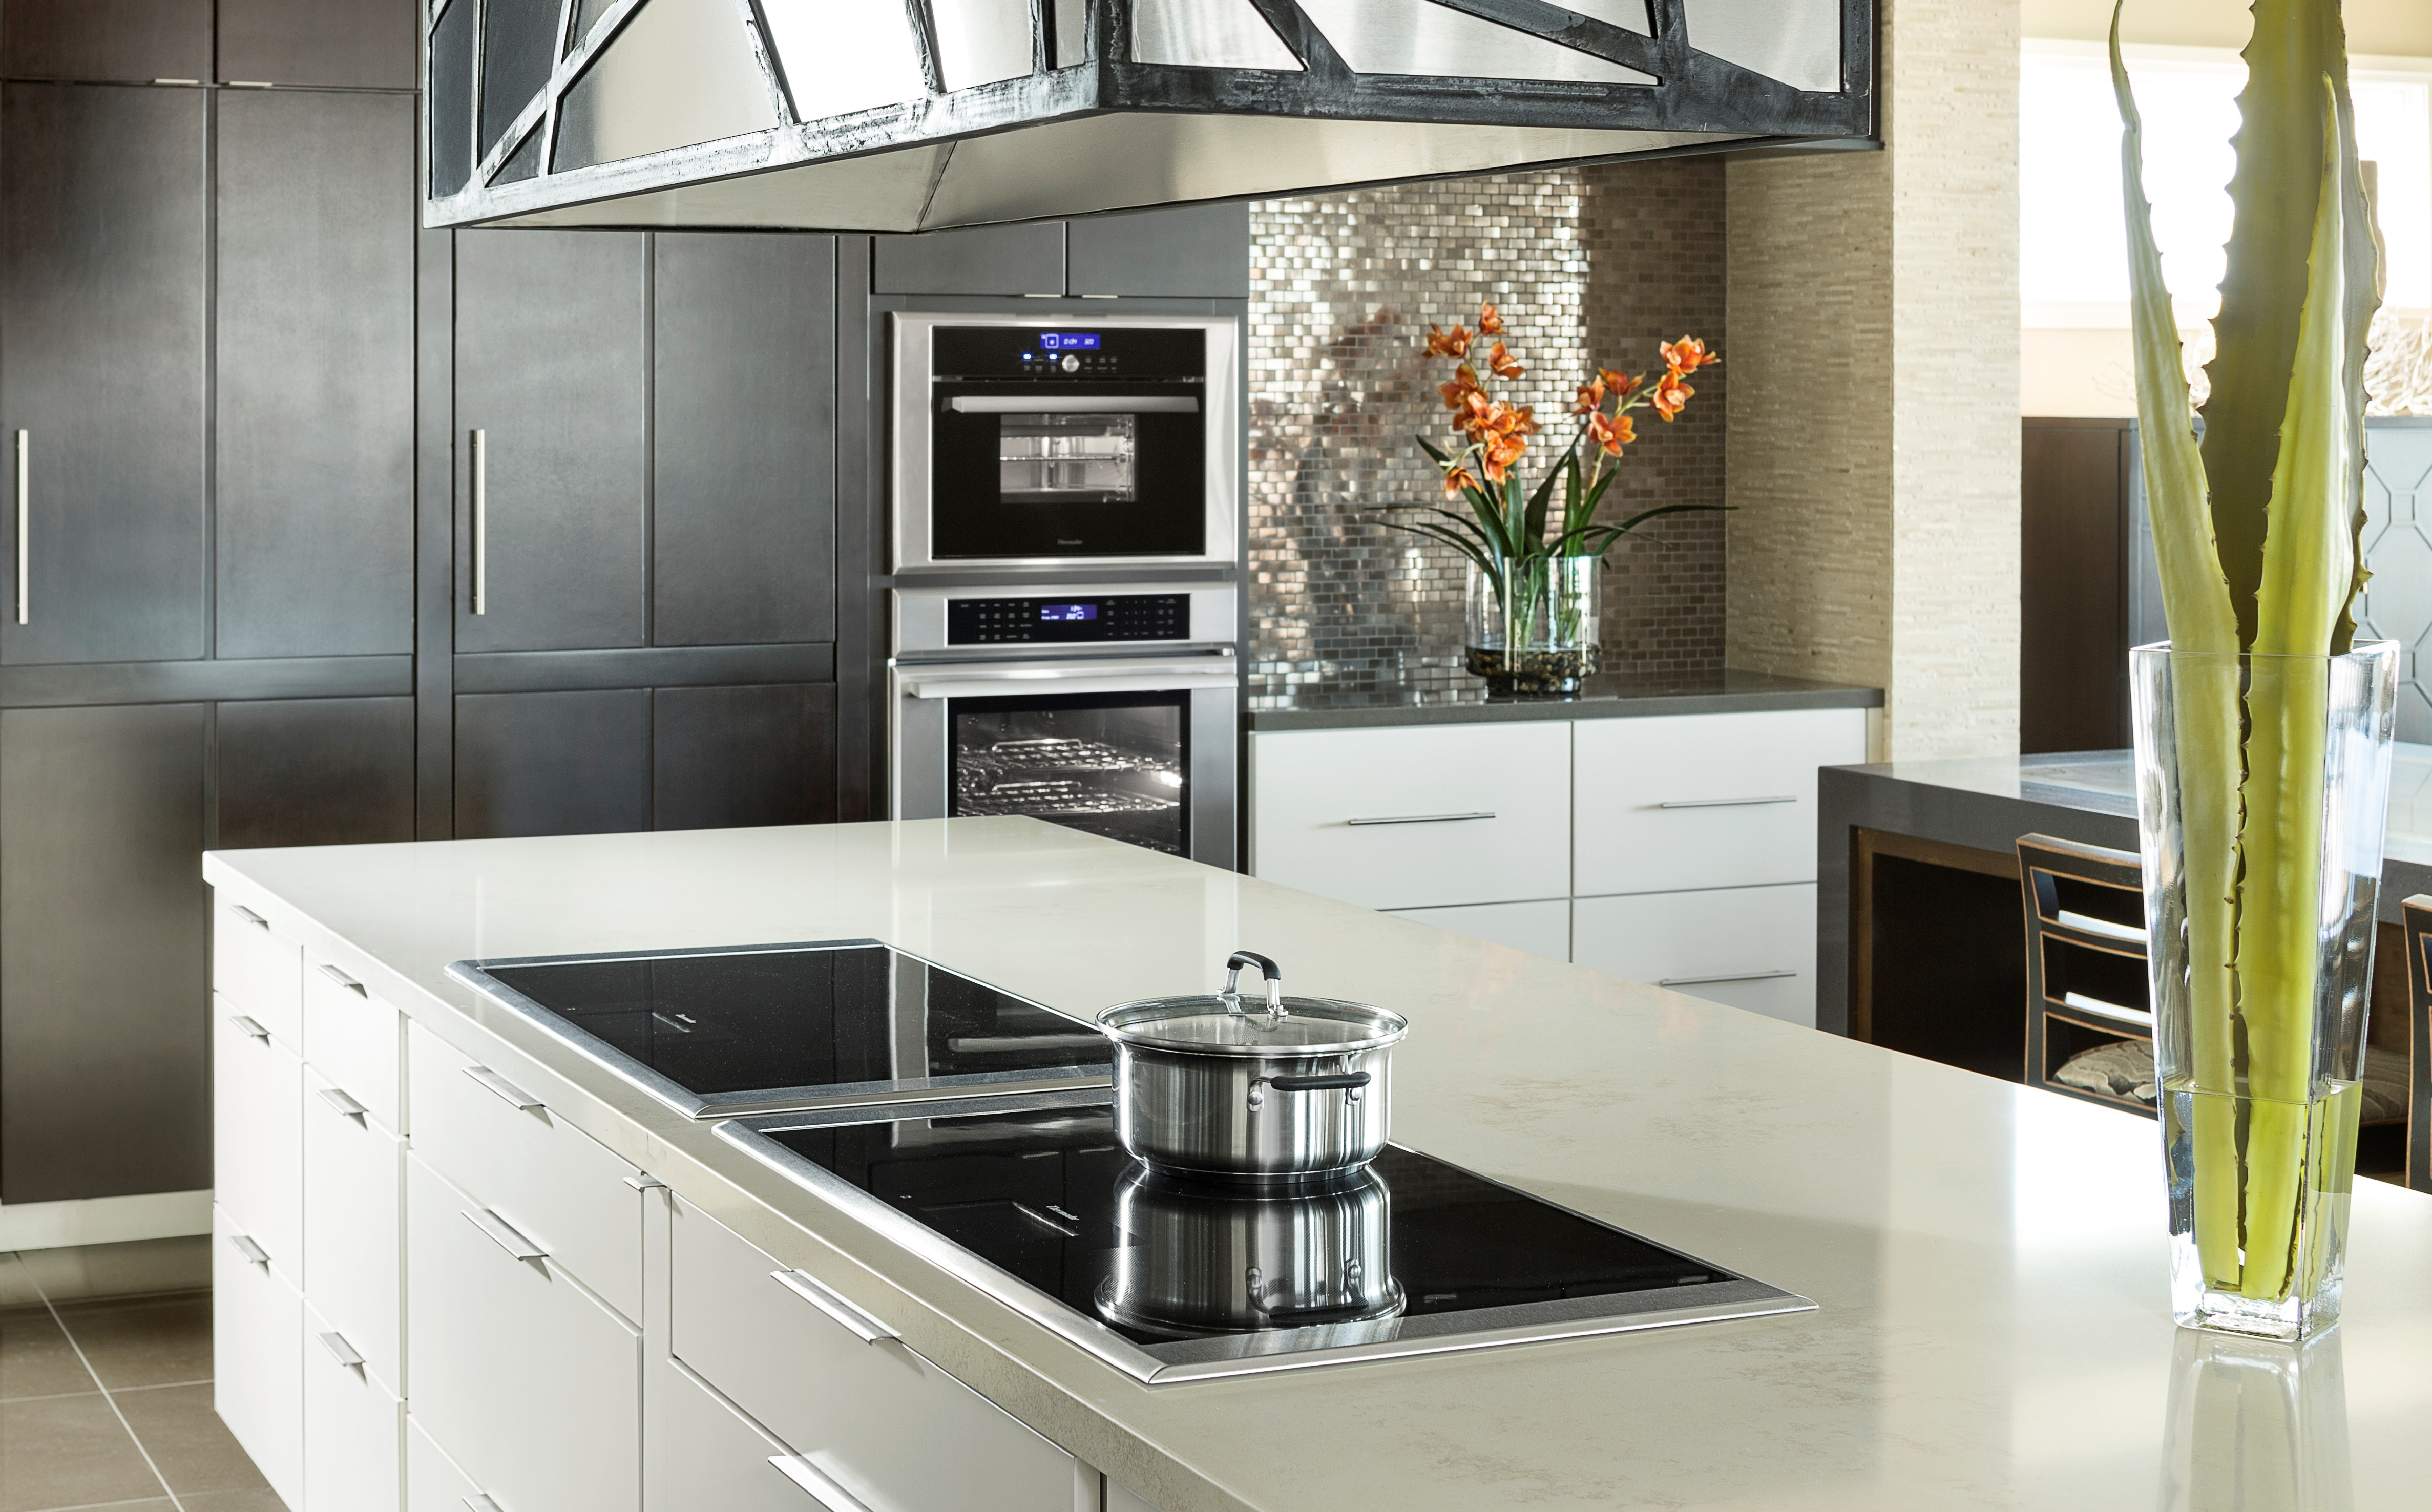 At 36 Inches The Freedom Induction Cooktop Offers Largest Cooking Surface In Industry Sleek Design Comprises Transpa Ceramic Cl With